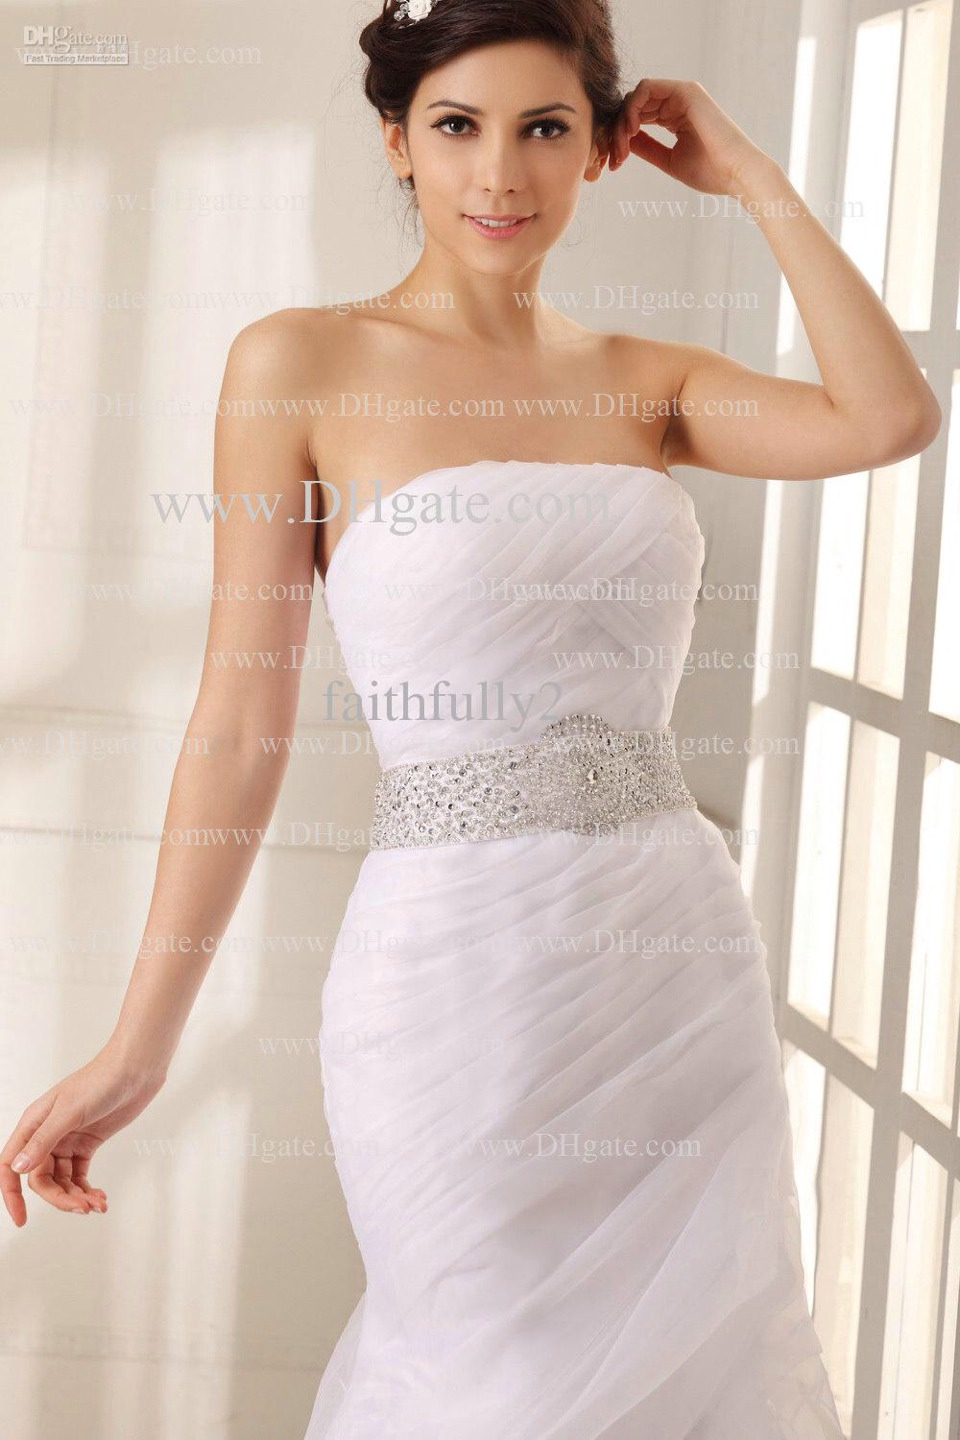 Strapless Wedding Gowns Musely